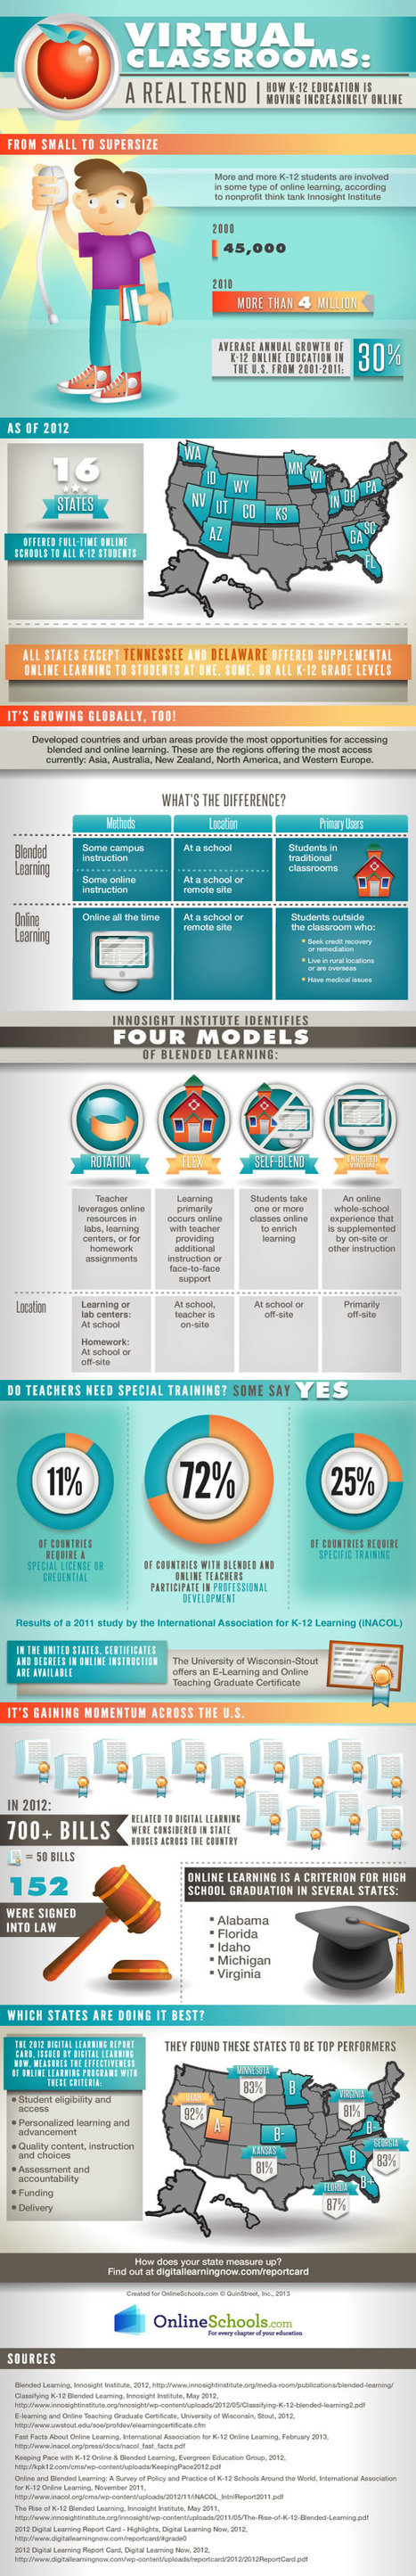 K-12 Distance Learning and Blended Learning: Trends on the Rise? | Virtual Instruction | Scoop.it